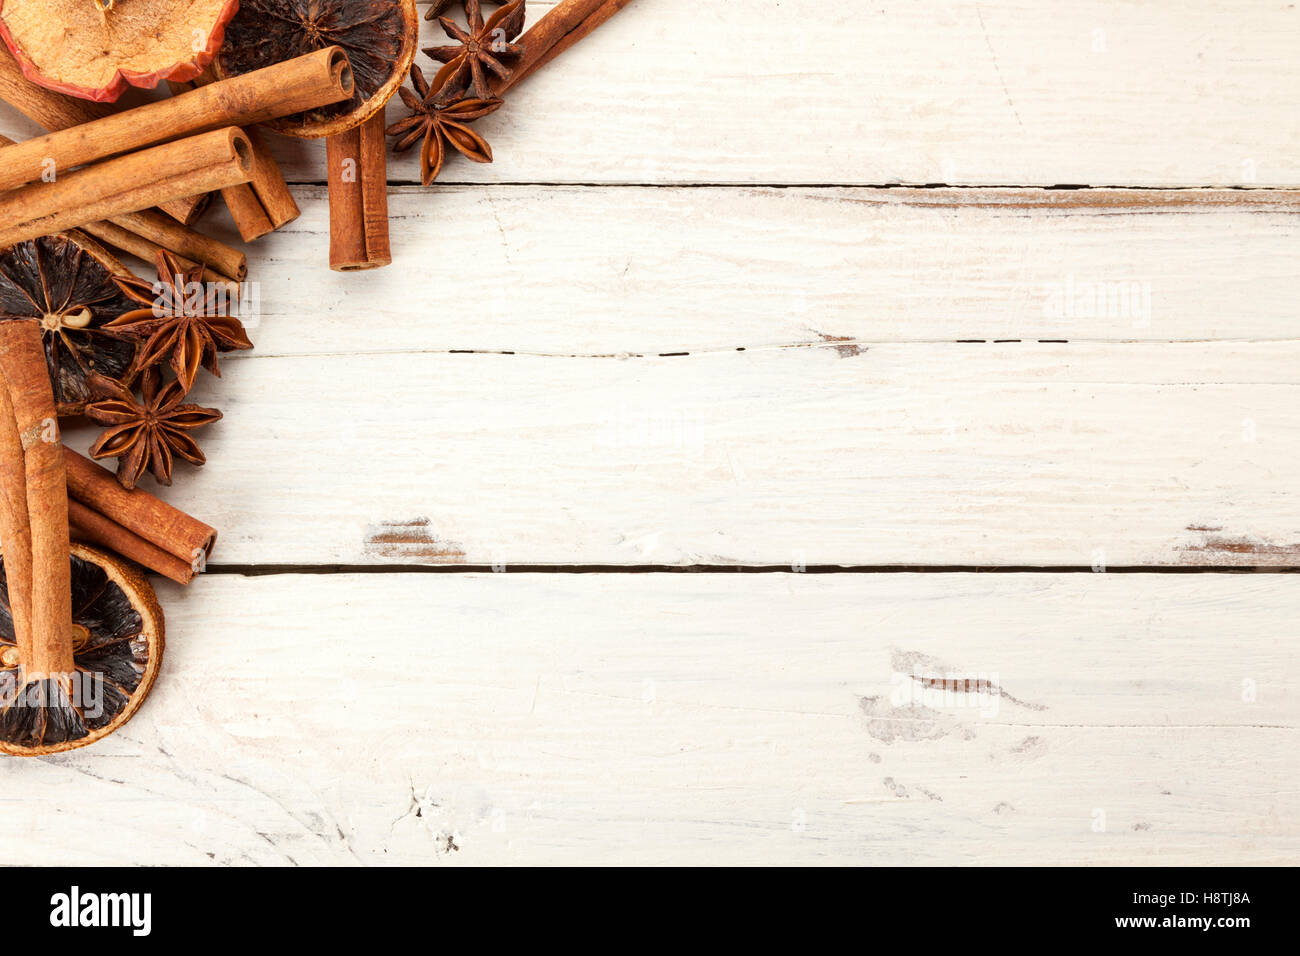 Christmas background with cinnamon sticks, anise and dried fruit on white painted wood Stock Photo